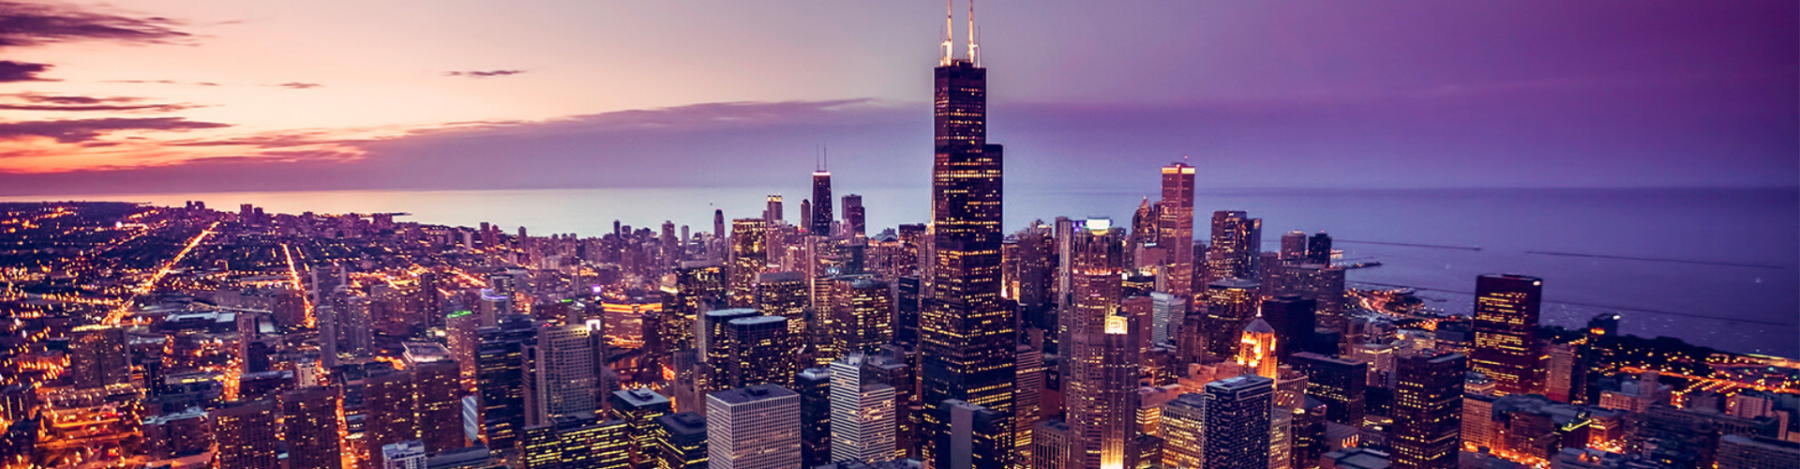 How to spend 48 hours in Chicago with Hilton